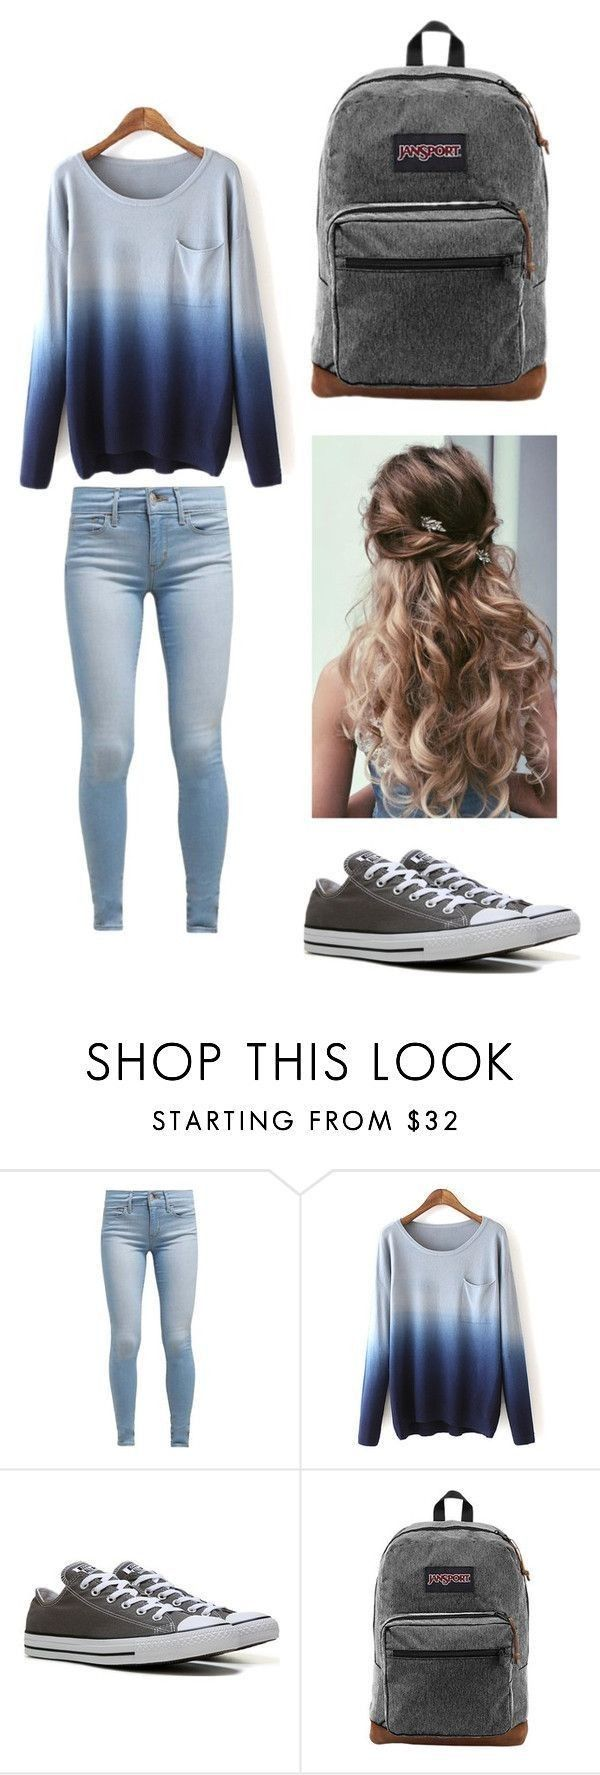 Pin by emily moreno on outfits pinterest clothes school outfits